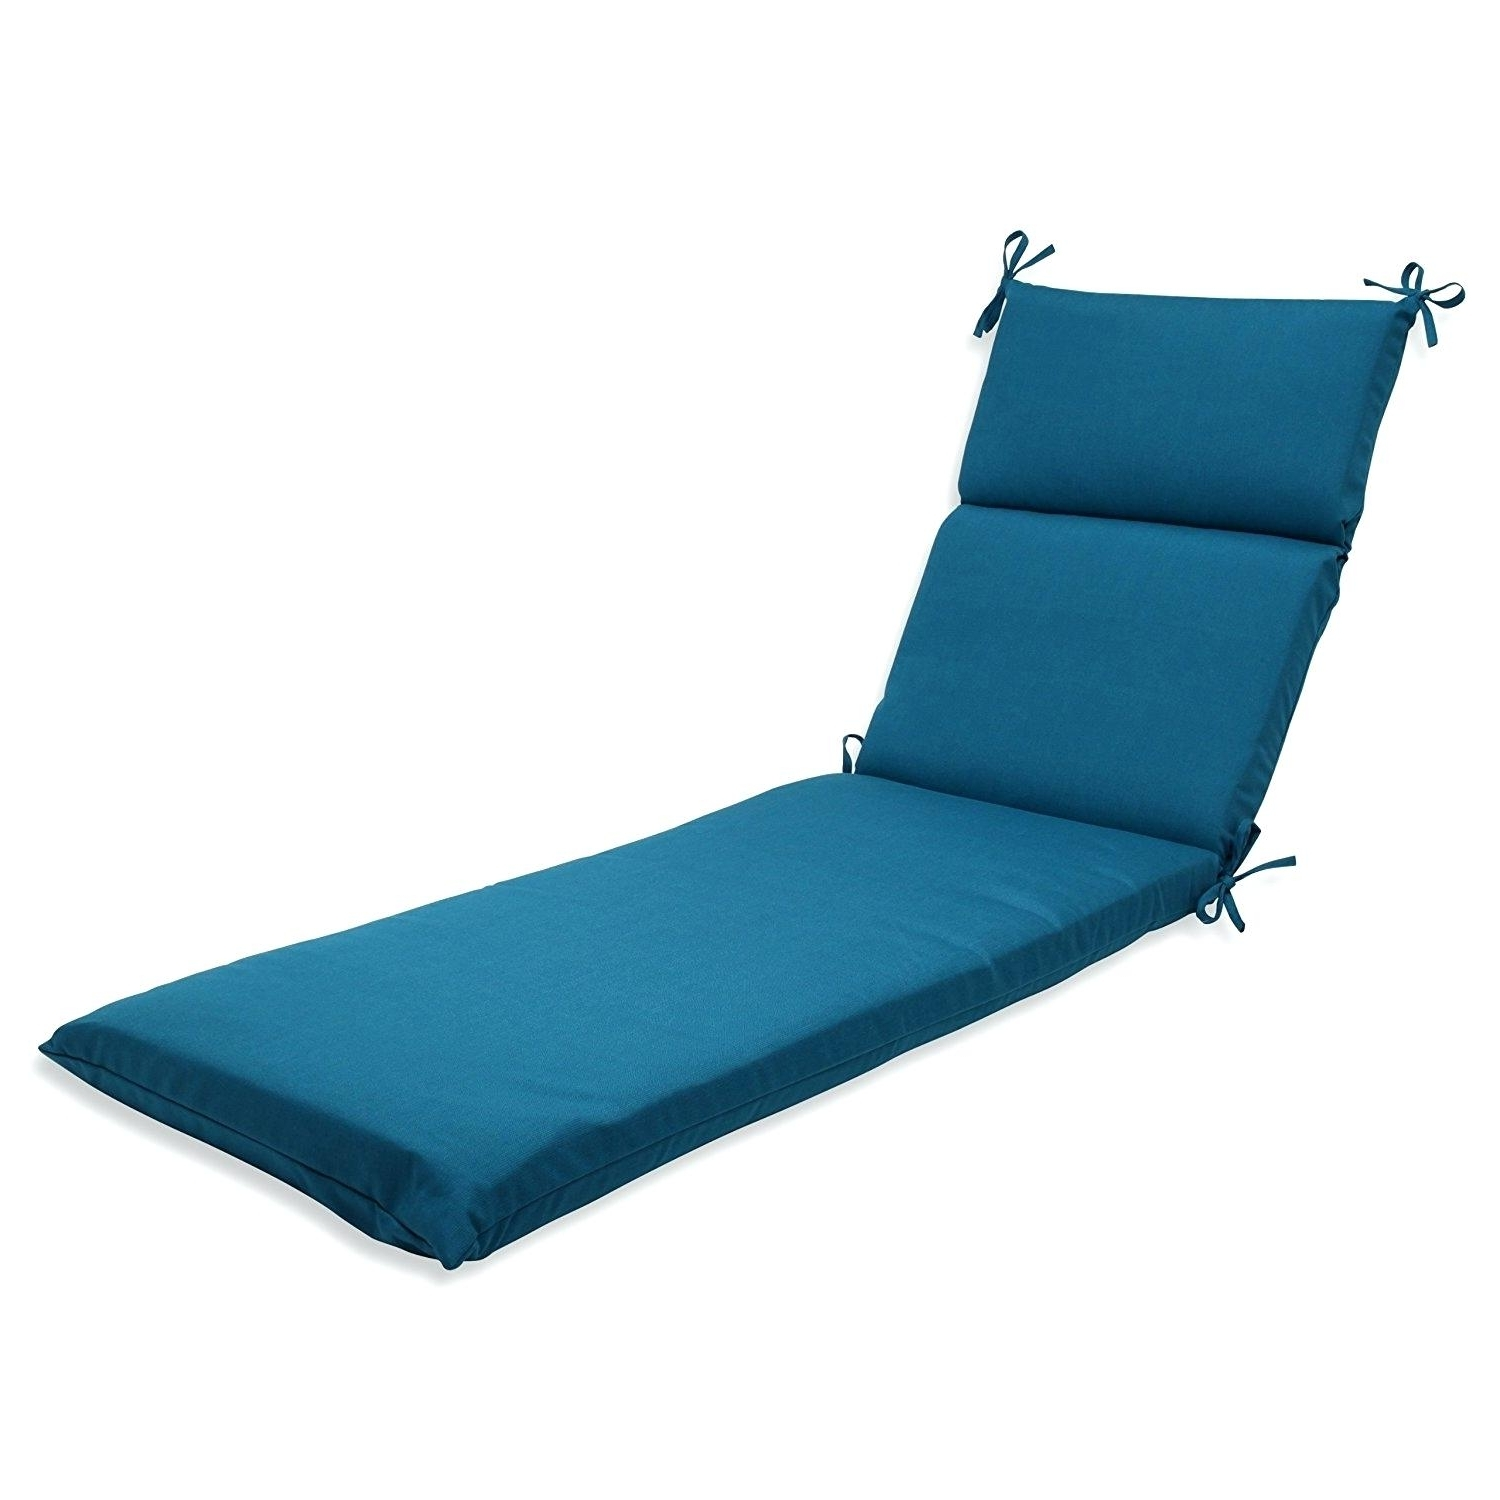 Outdoor Chaise Lounge Covers Intended For Widely Used Outdoor Furniture Cushions Covers Awesome Ideas Blue Bay Gorgeous (View 11 of 15)